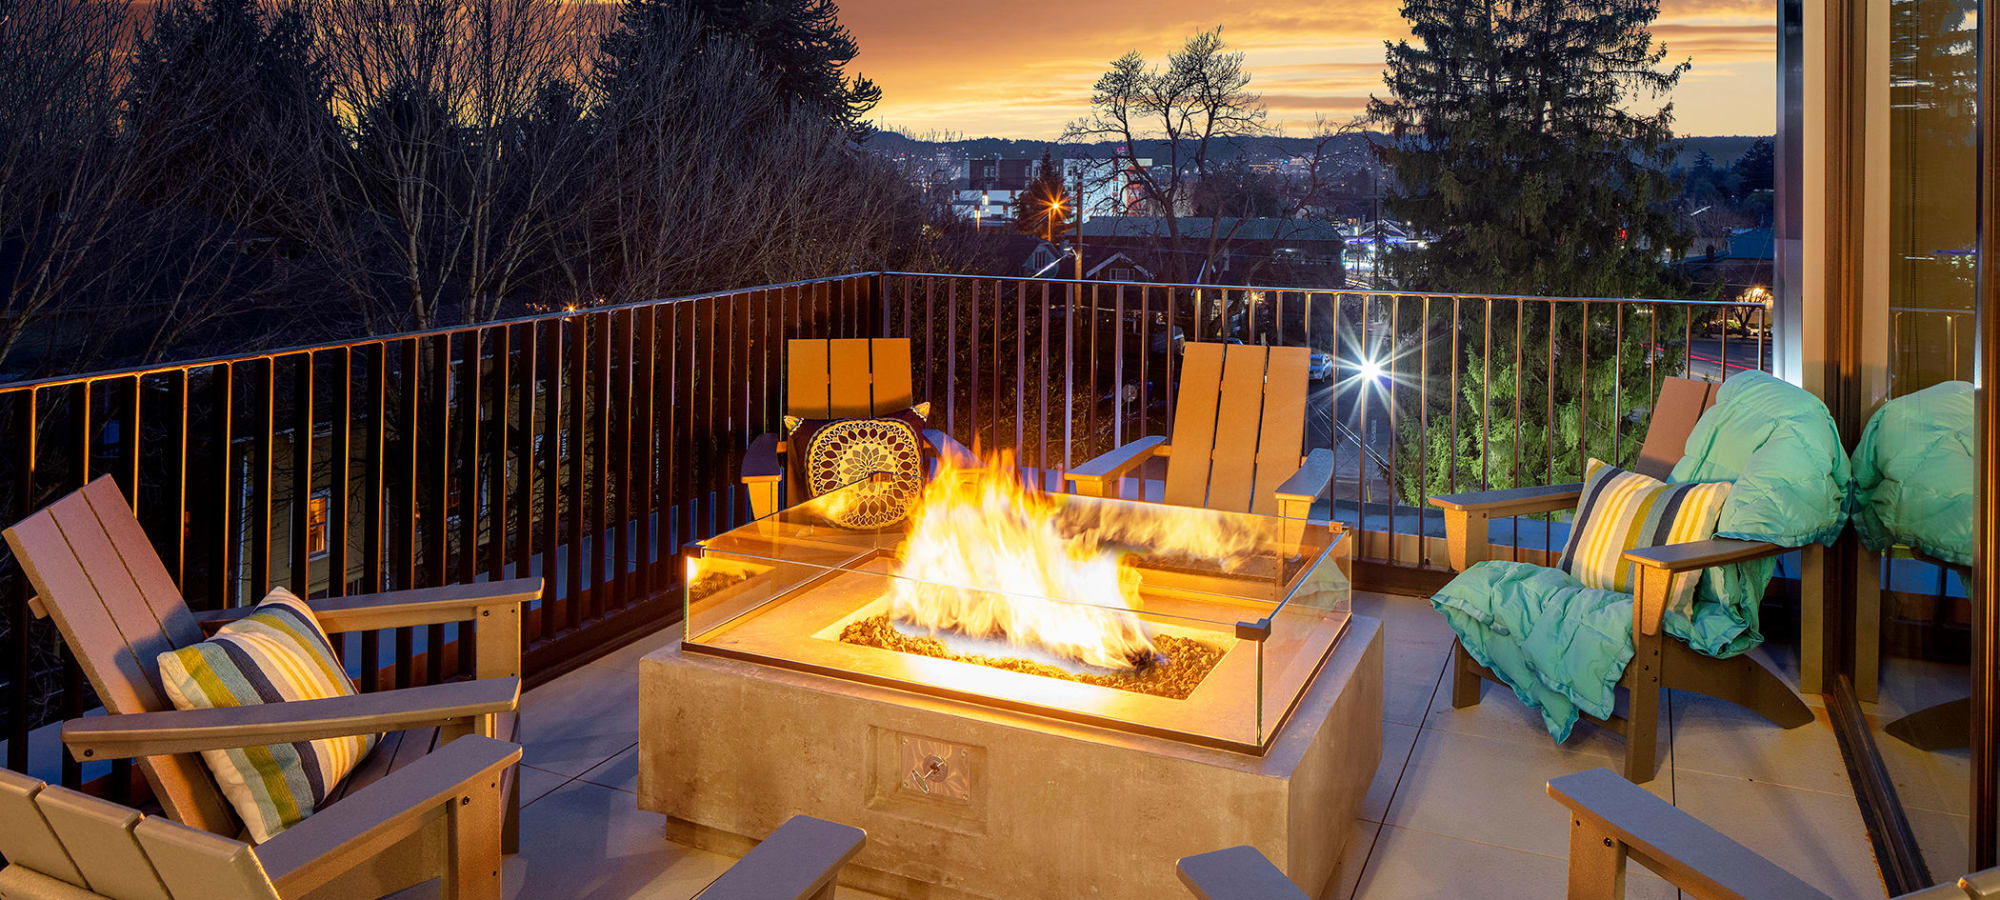 Patio seating with a lit fire pit at Sandy Fifty One in Portland, Oregon